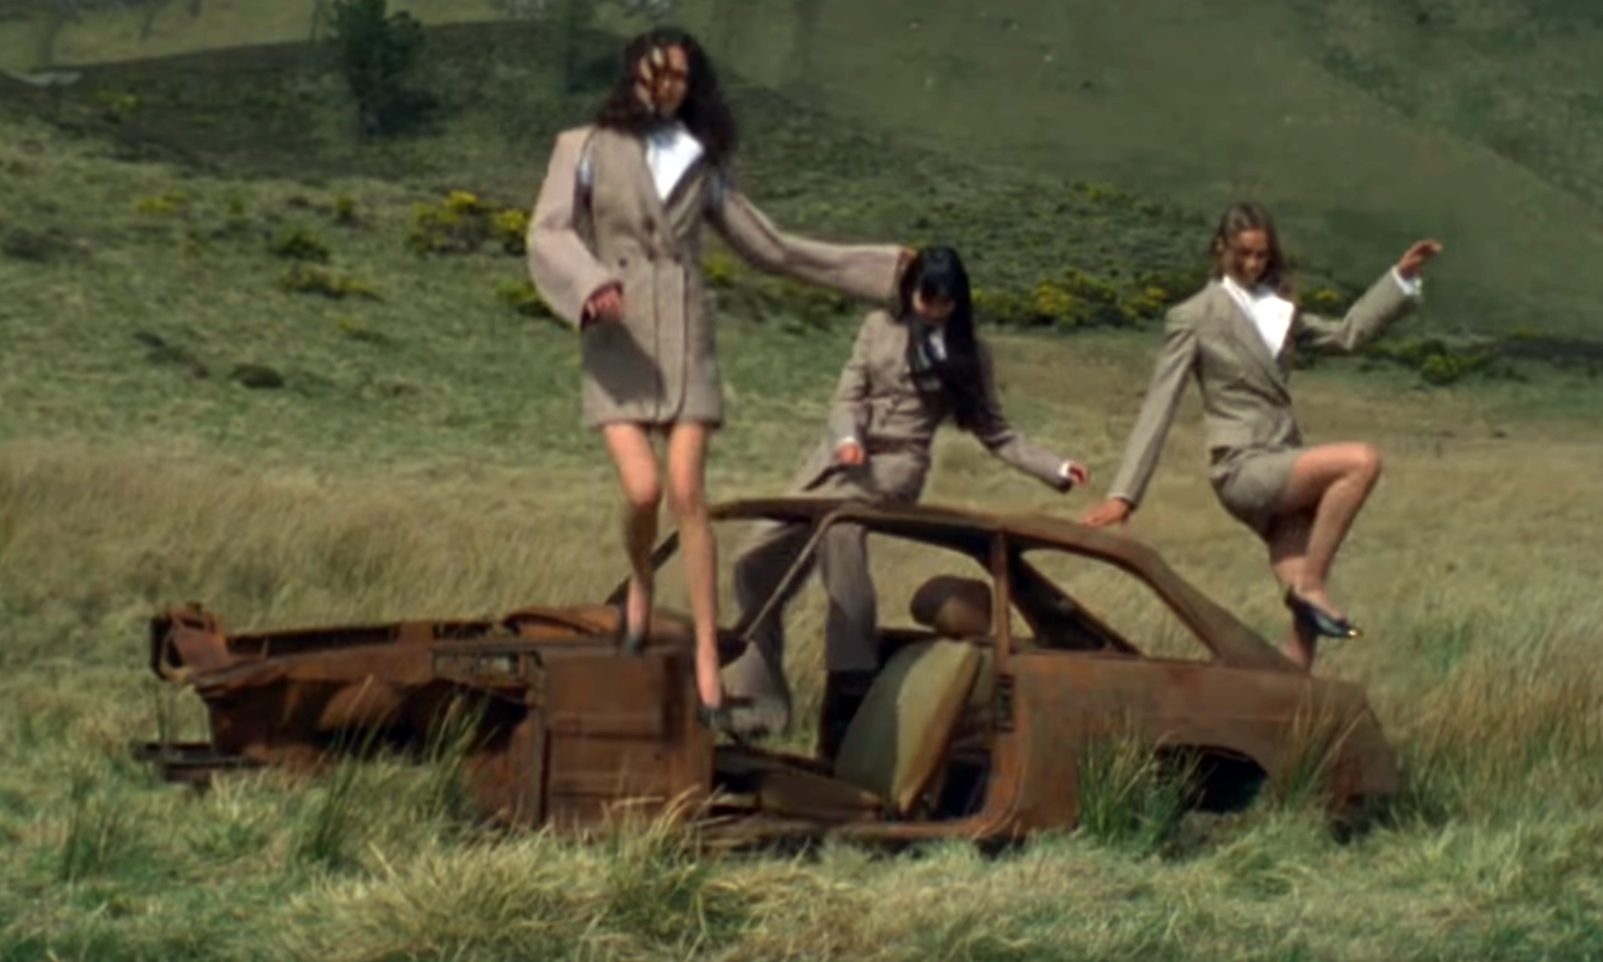 Models posed on a rusty car for the McCartney shoot